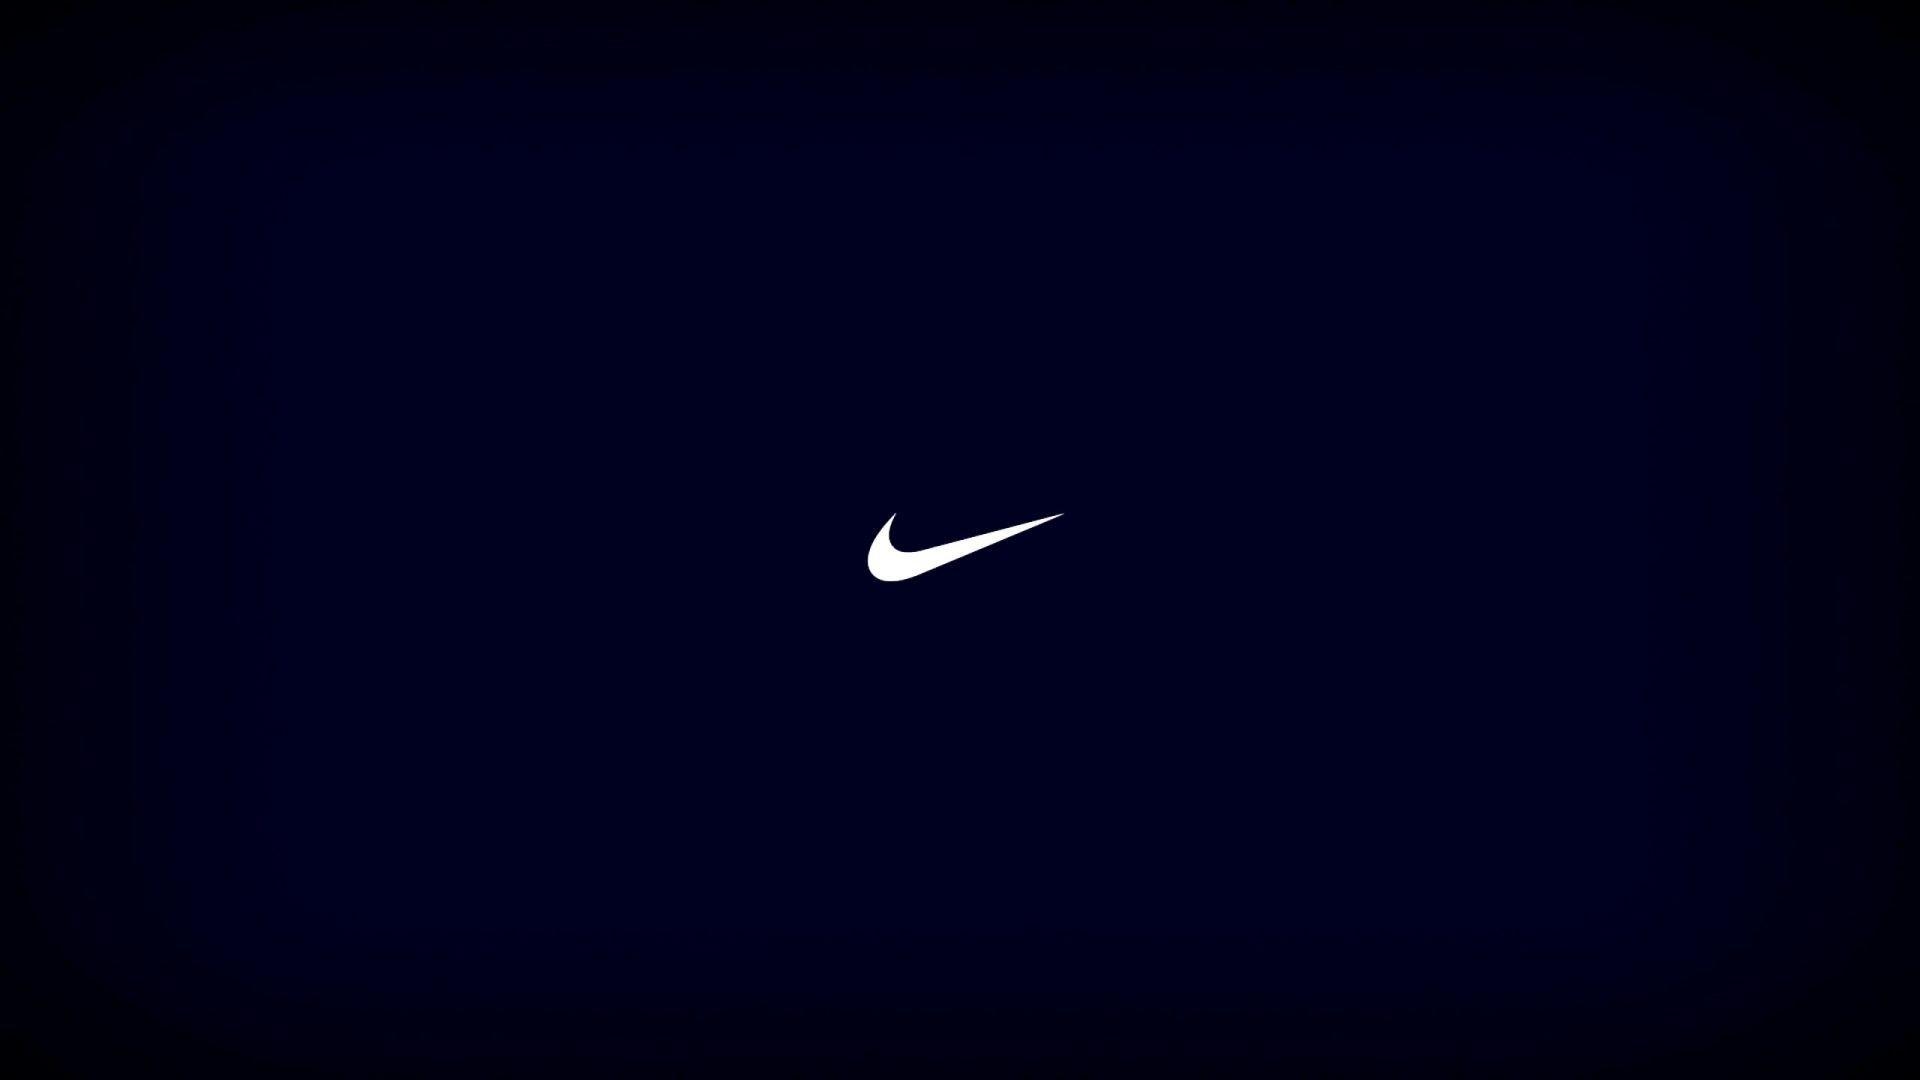 nike background Download cool free nike logos mobile wallpapers and desktop wallpapers, below catalog includes a great selection of best nike wallpapers for mobile phones.